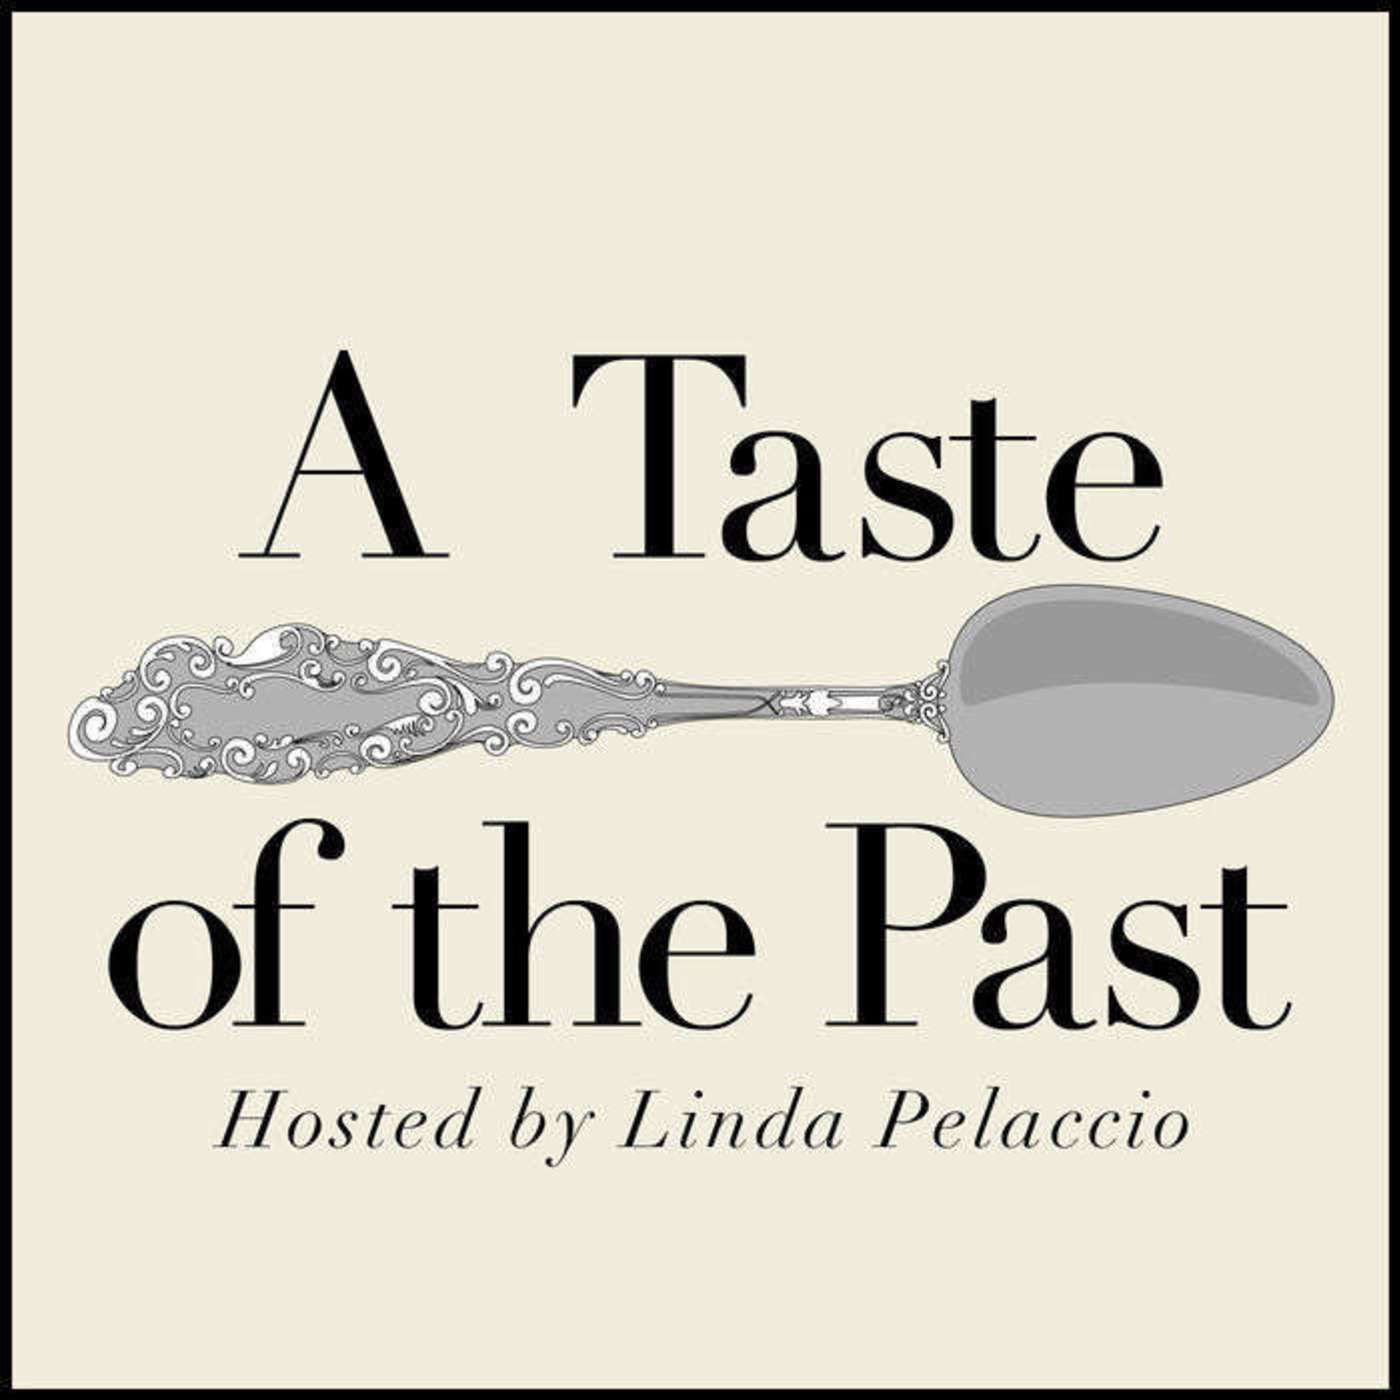 Episode 1: William Grimes: A History of New York Restaurants